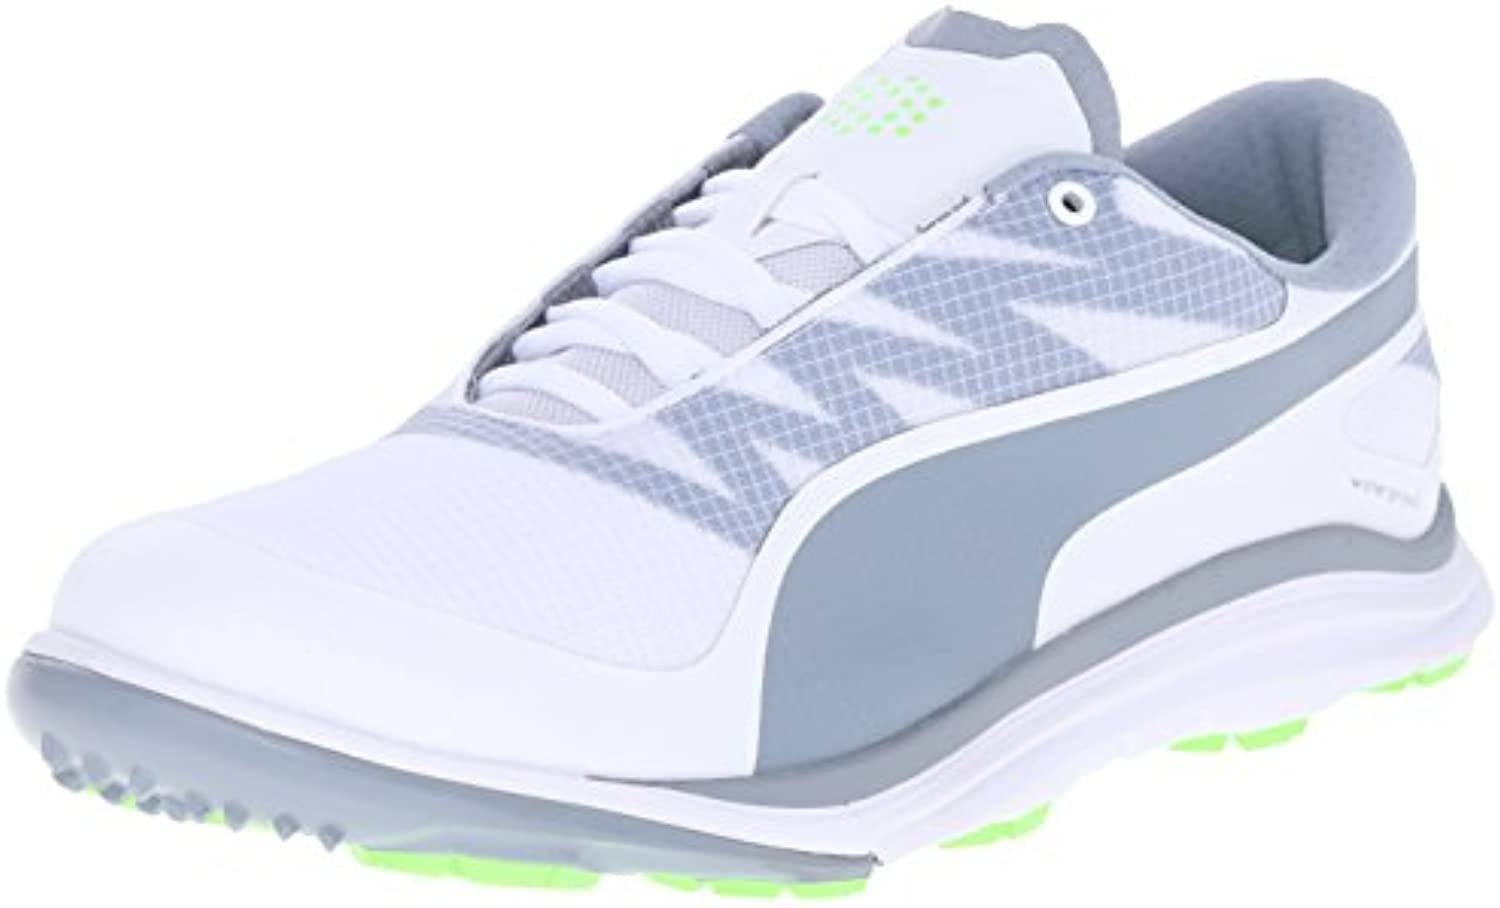 PUMA Men's BioDrive Golf Shoe  White/Tradewinds/Grey  10 M US